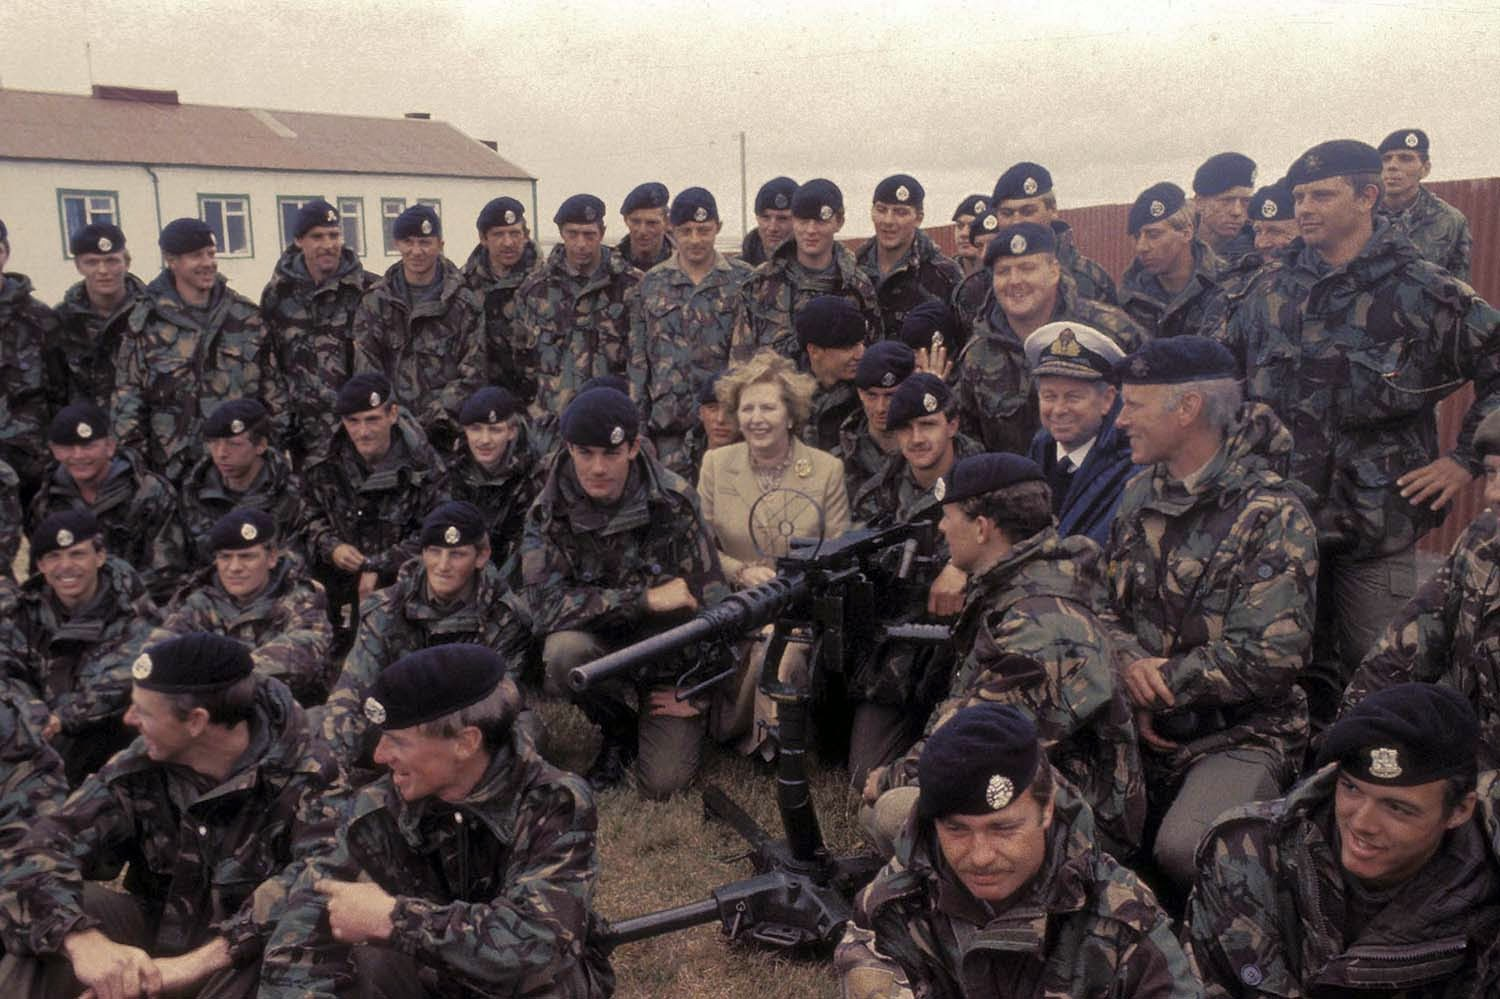 Thatcher's boys: Visiting troops in the Falklands in 1983.